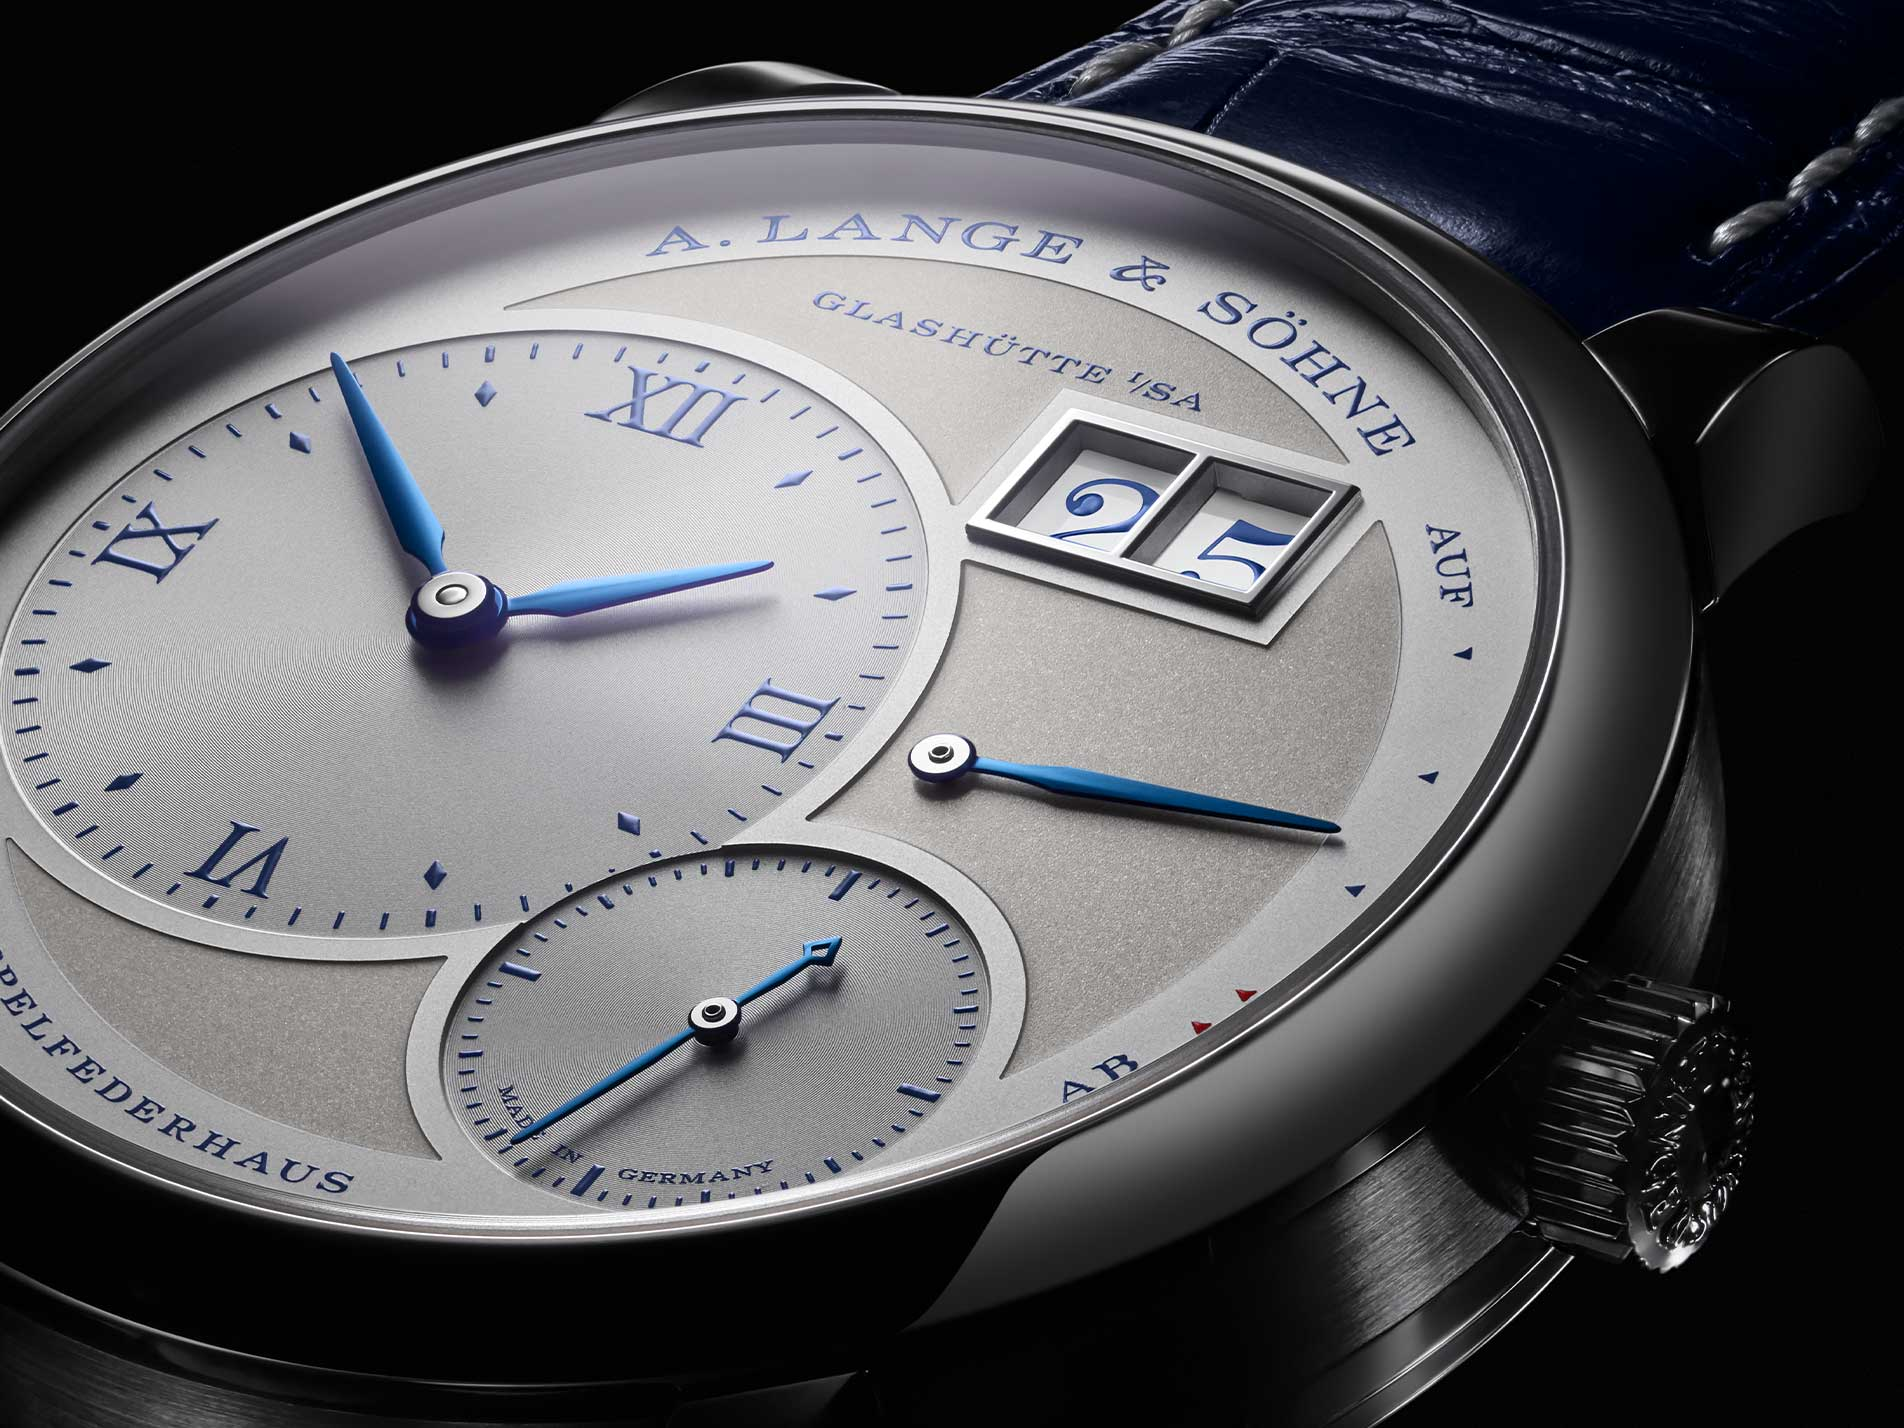 https://www.alange-soehne.com/sites/default/files/2019-01/alangeundsoehne-lange1-25thanniversary-whitegold-191066-1815384-1904x1428-lg.jpg